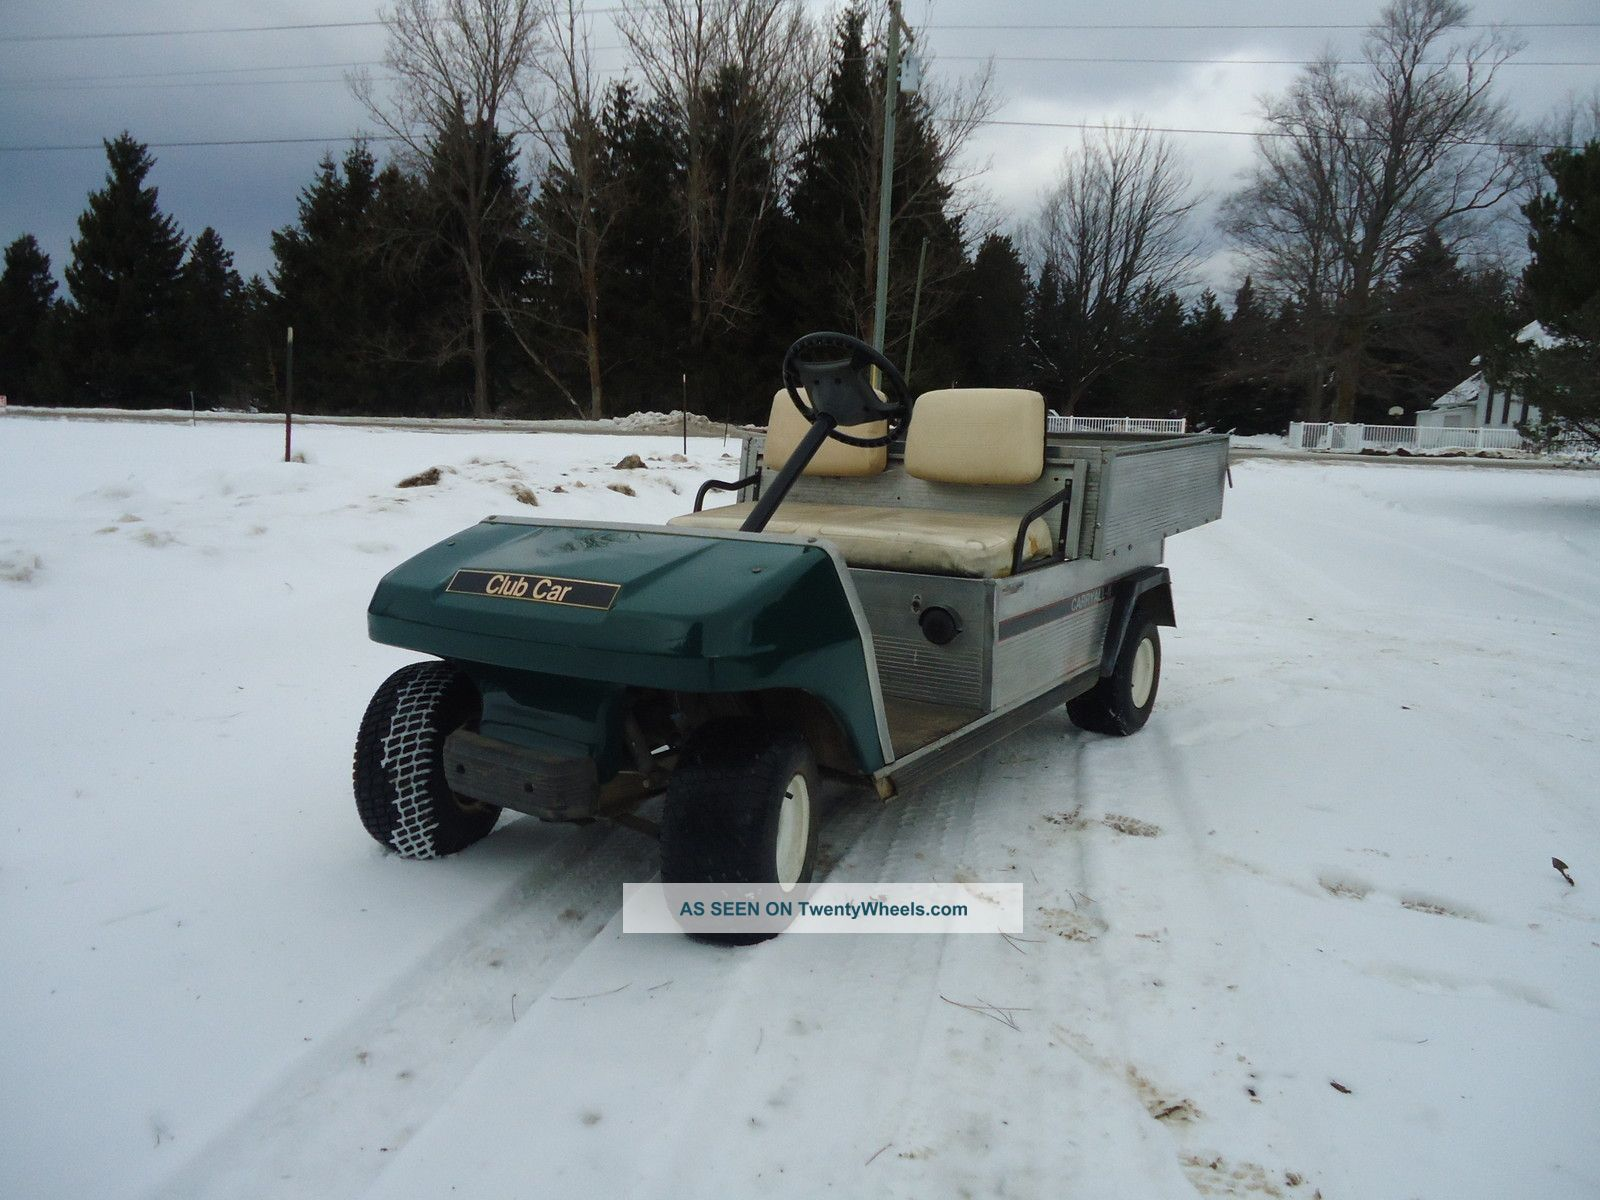 1997 Club Car Carry All With Hydraulic Aluminum Dump Bed Utility Vehicles photo